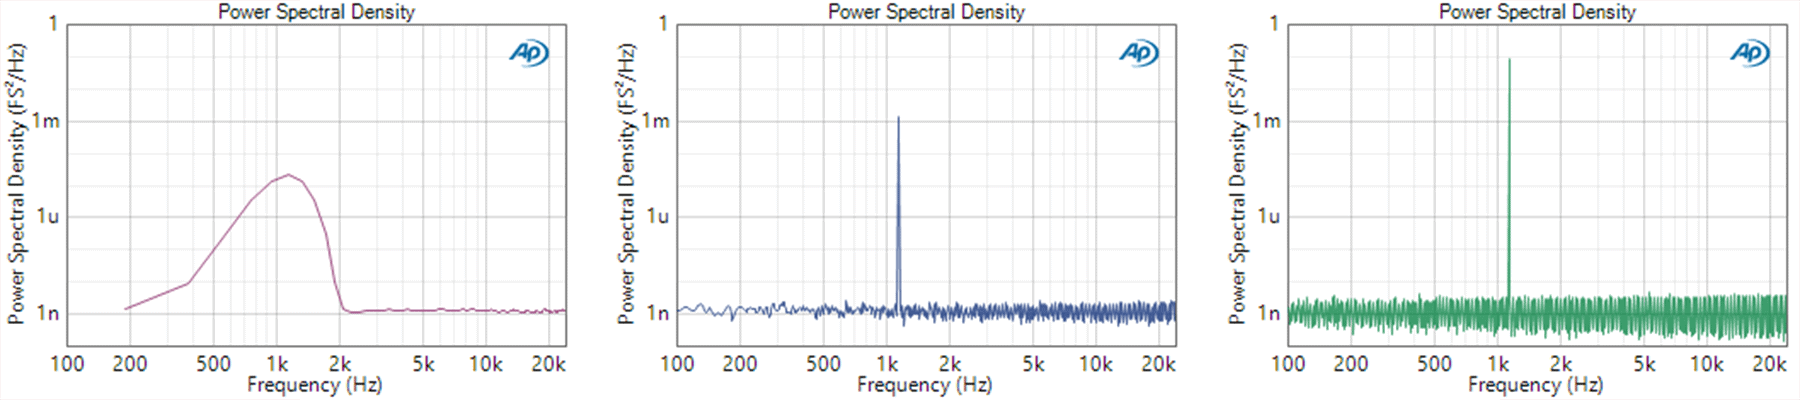 Figure 4. The same data as Figure 3 expressed as Power Spectral Density plots. Note how the noise plateau is constant, but the level of the peak increases with the FFT Length.